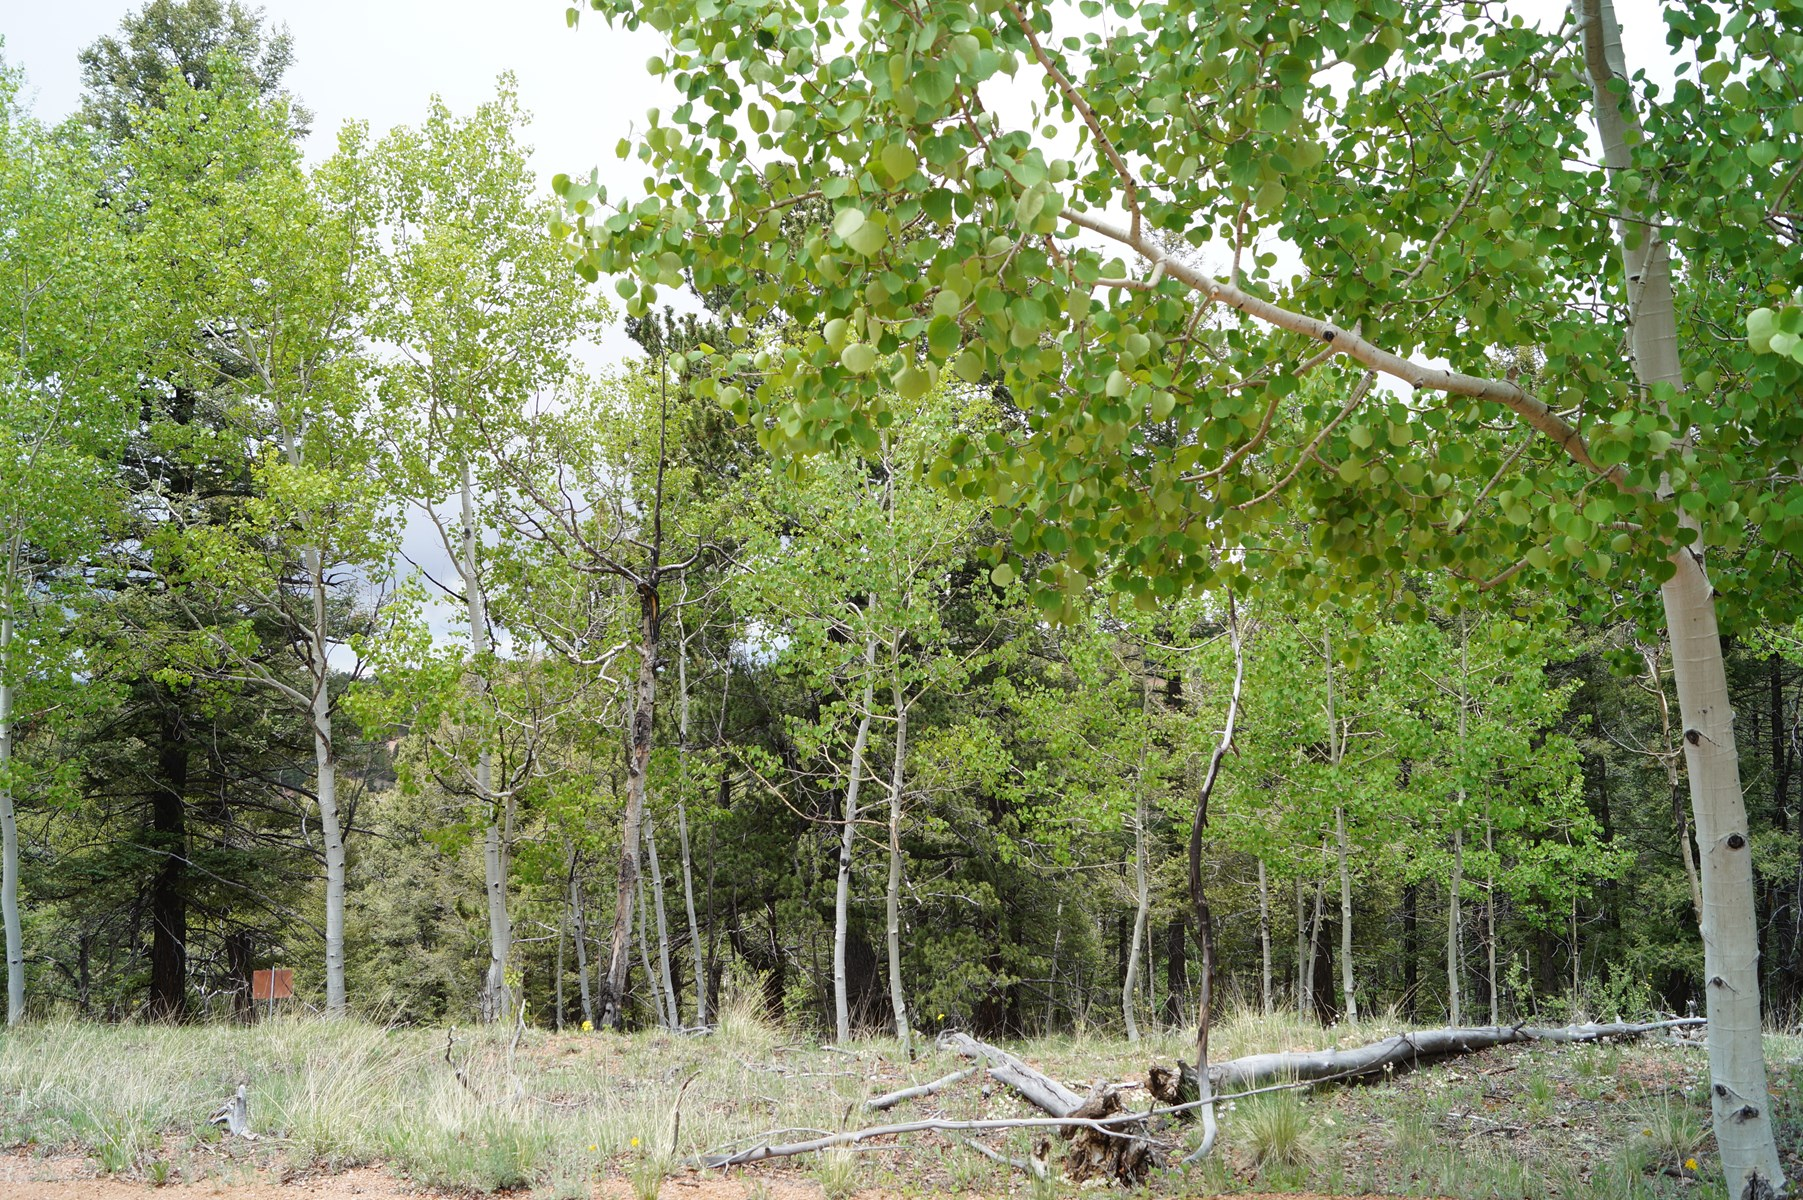 1.57 acres of Vacant Land in Cripple Creek, CO